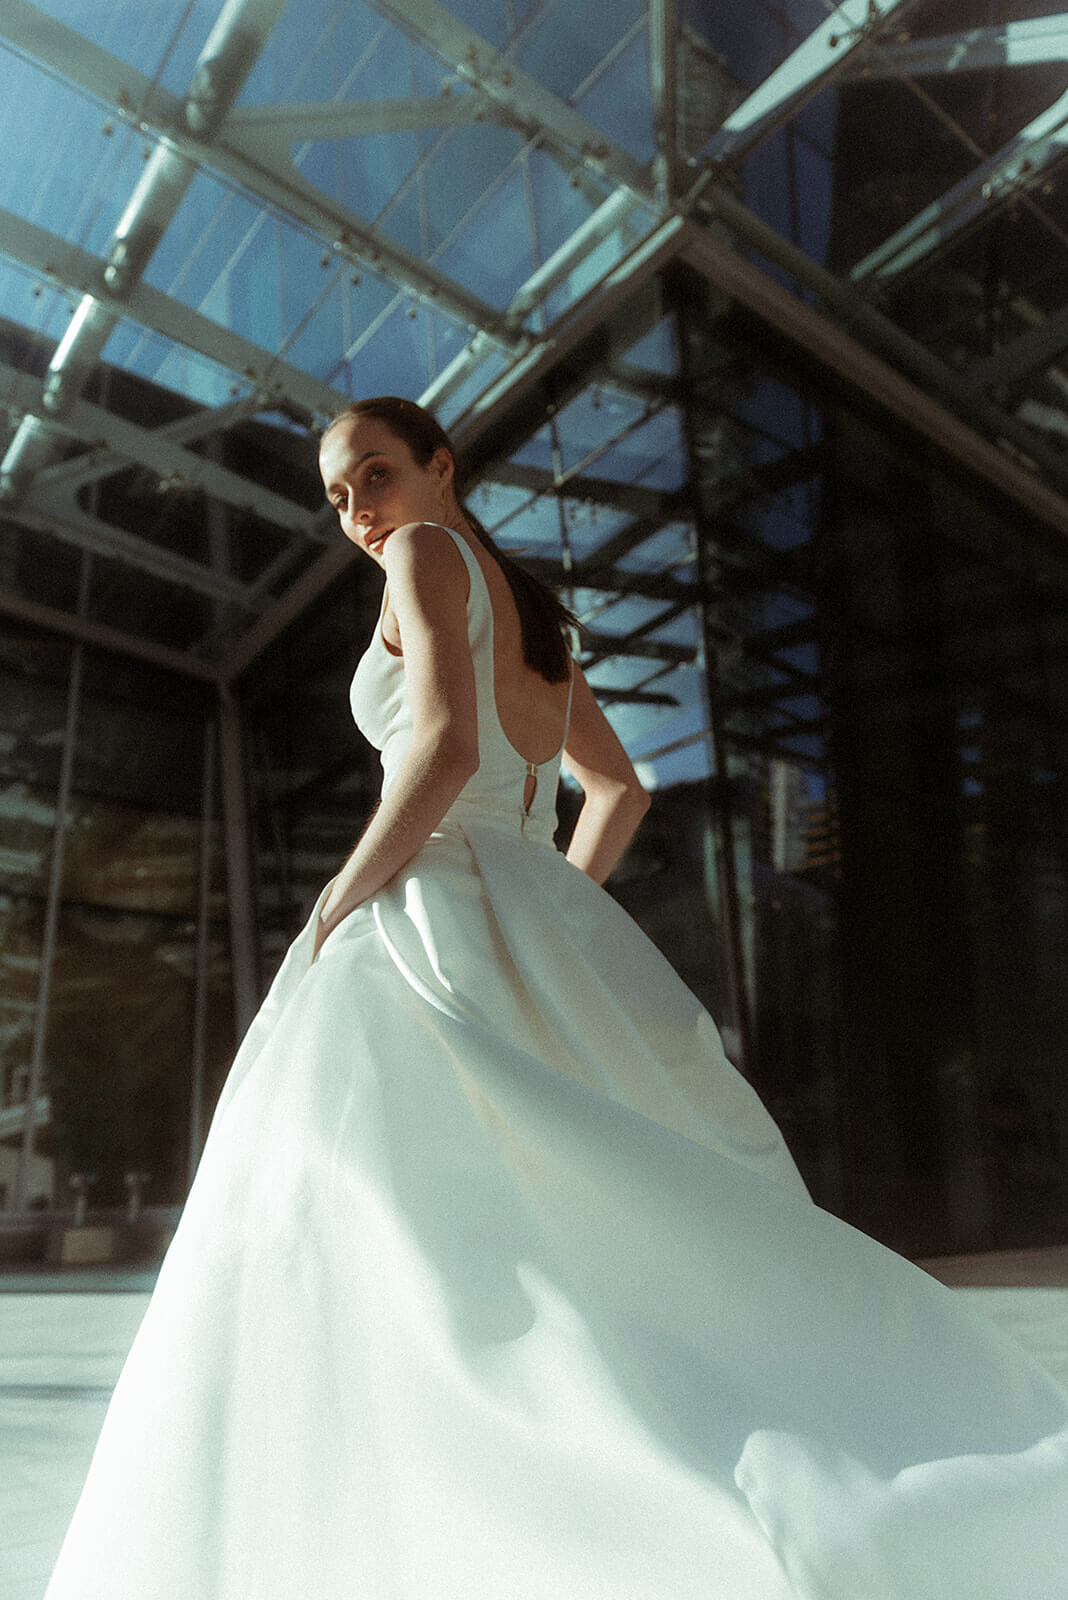 Vogue_inspired_urban_bridal_inspiration_Shoot_Vancouver_Downtown11291318117976